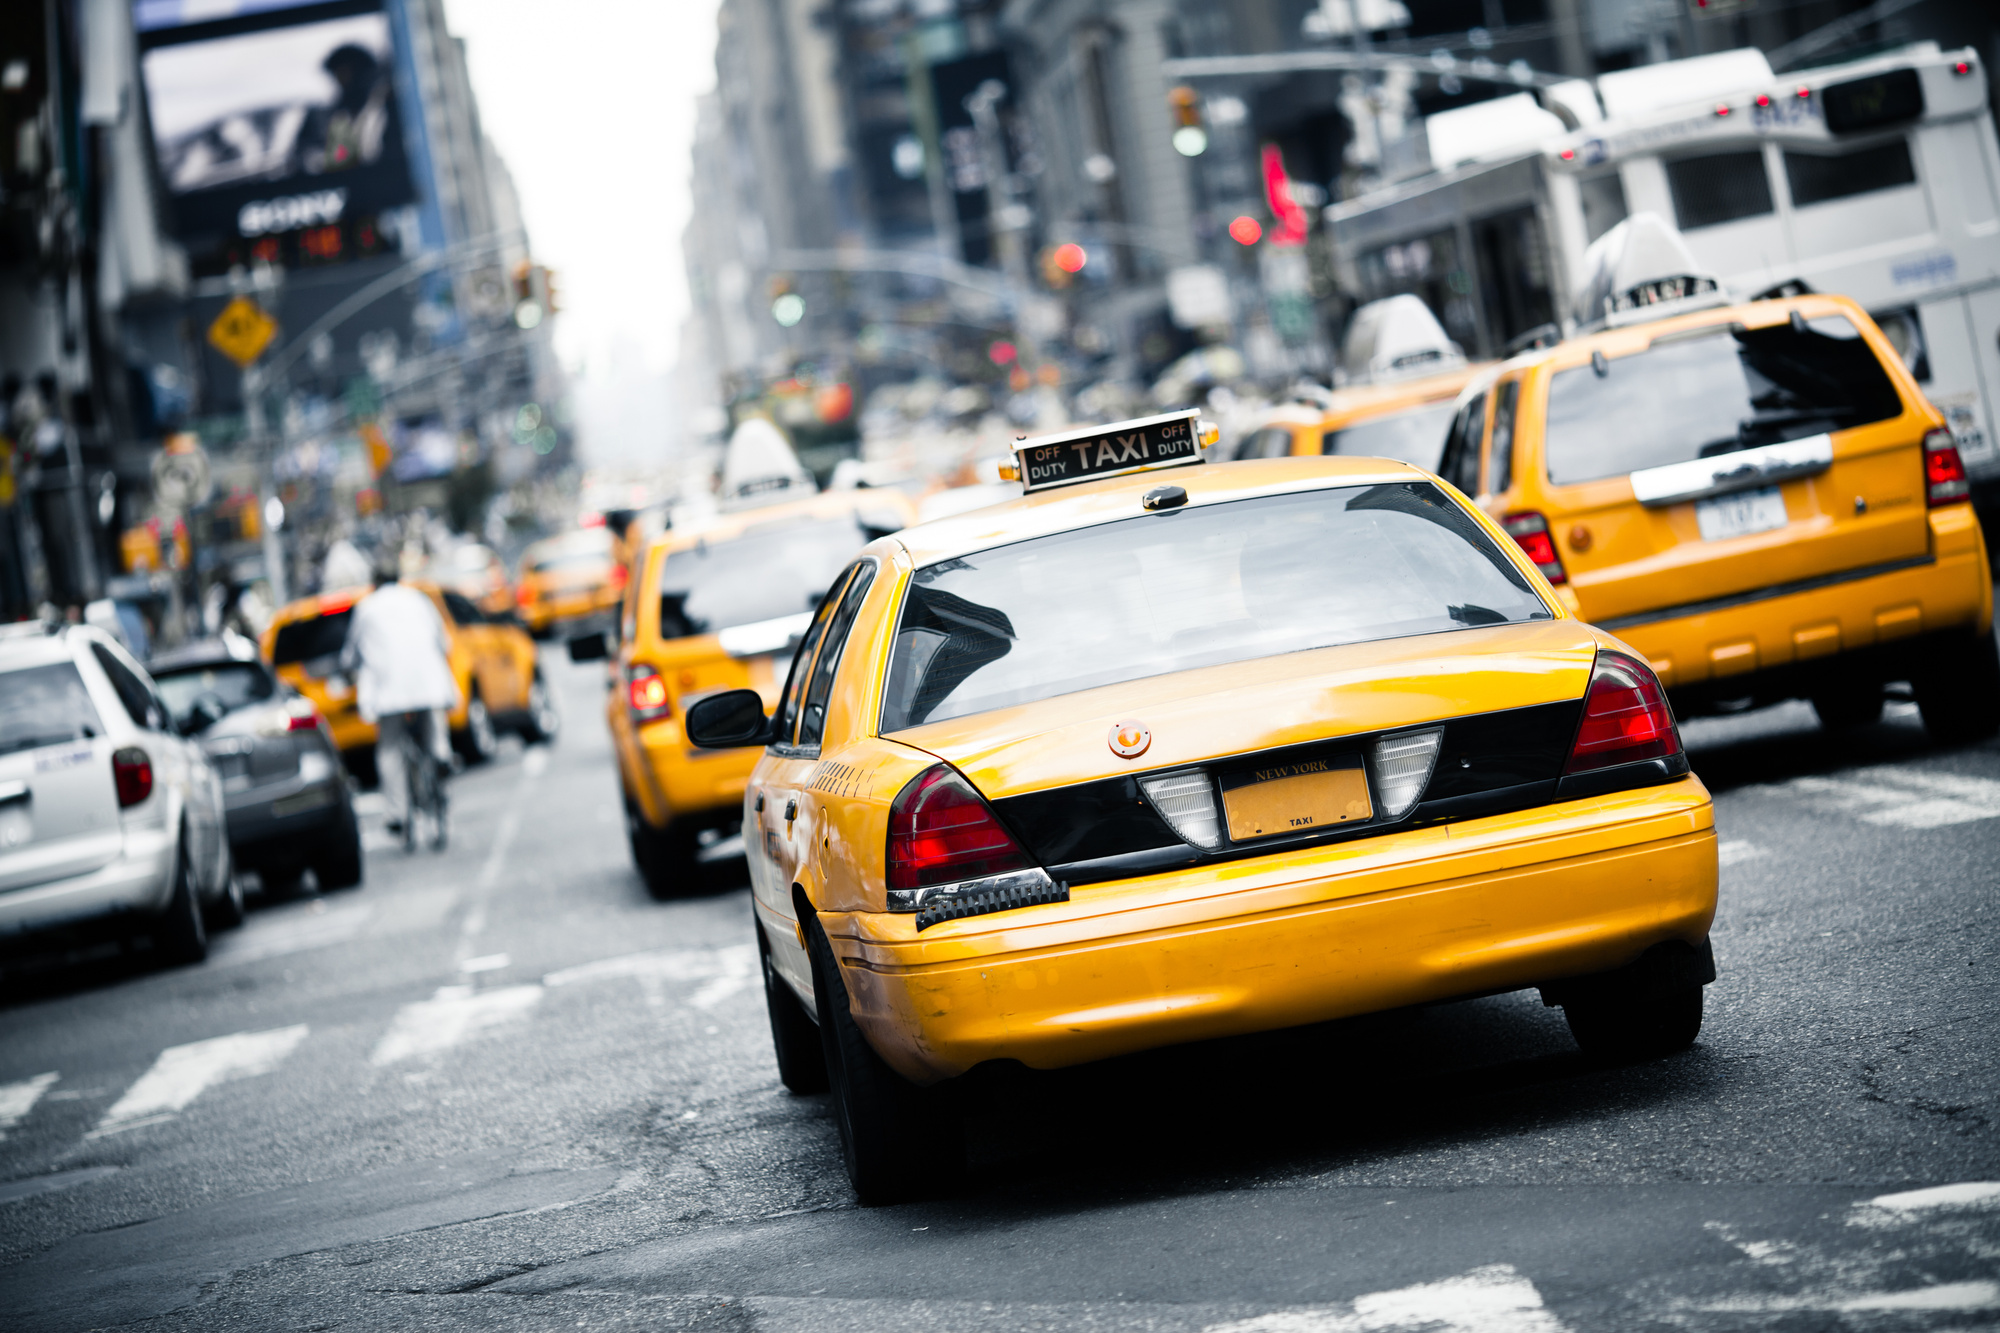 Taxi New York >> 8 Etiquette Rules When Using A Taxi Service In New York